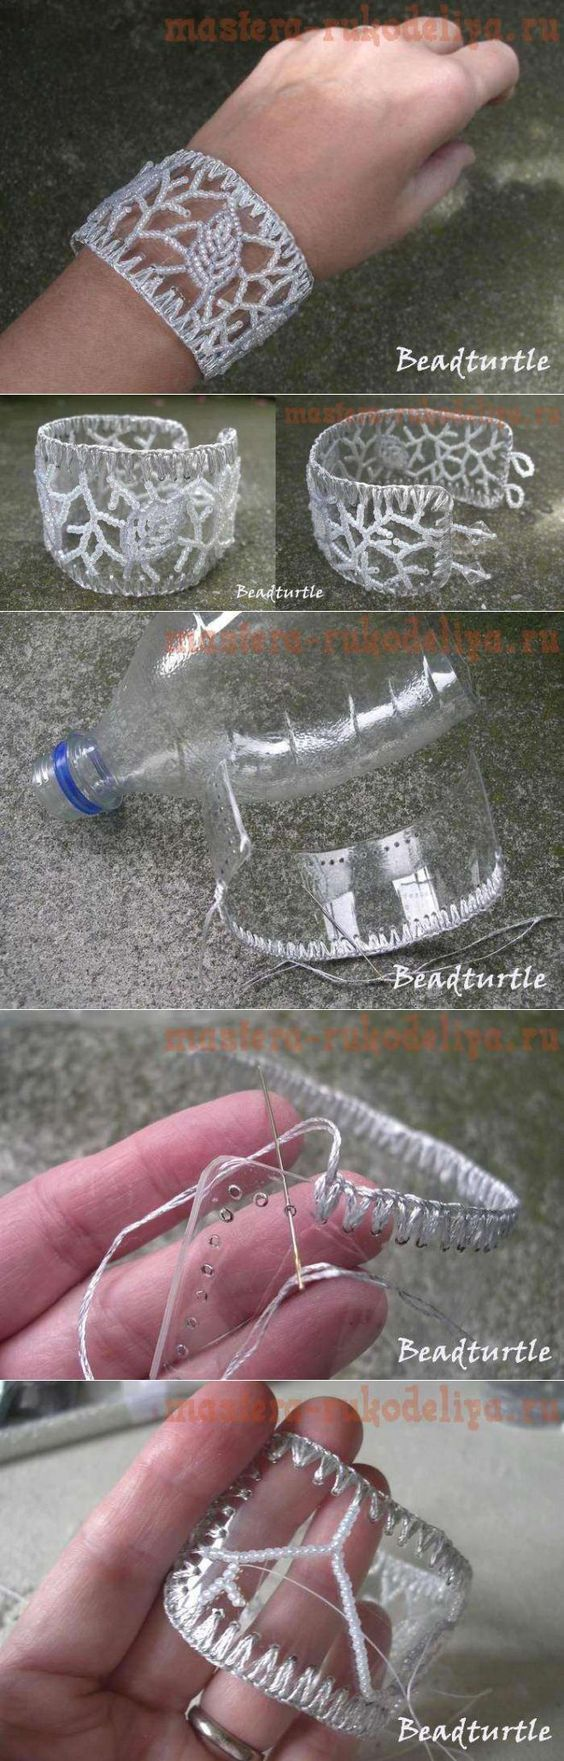 Creative ways to Repurpose plastic bottles | ecogreenlove